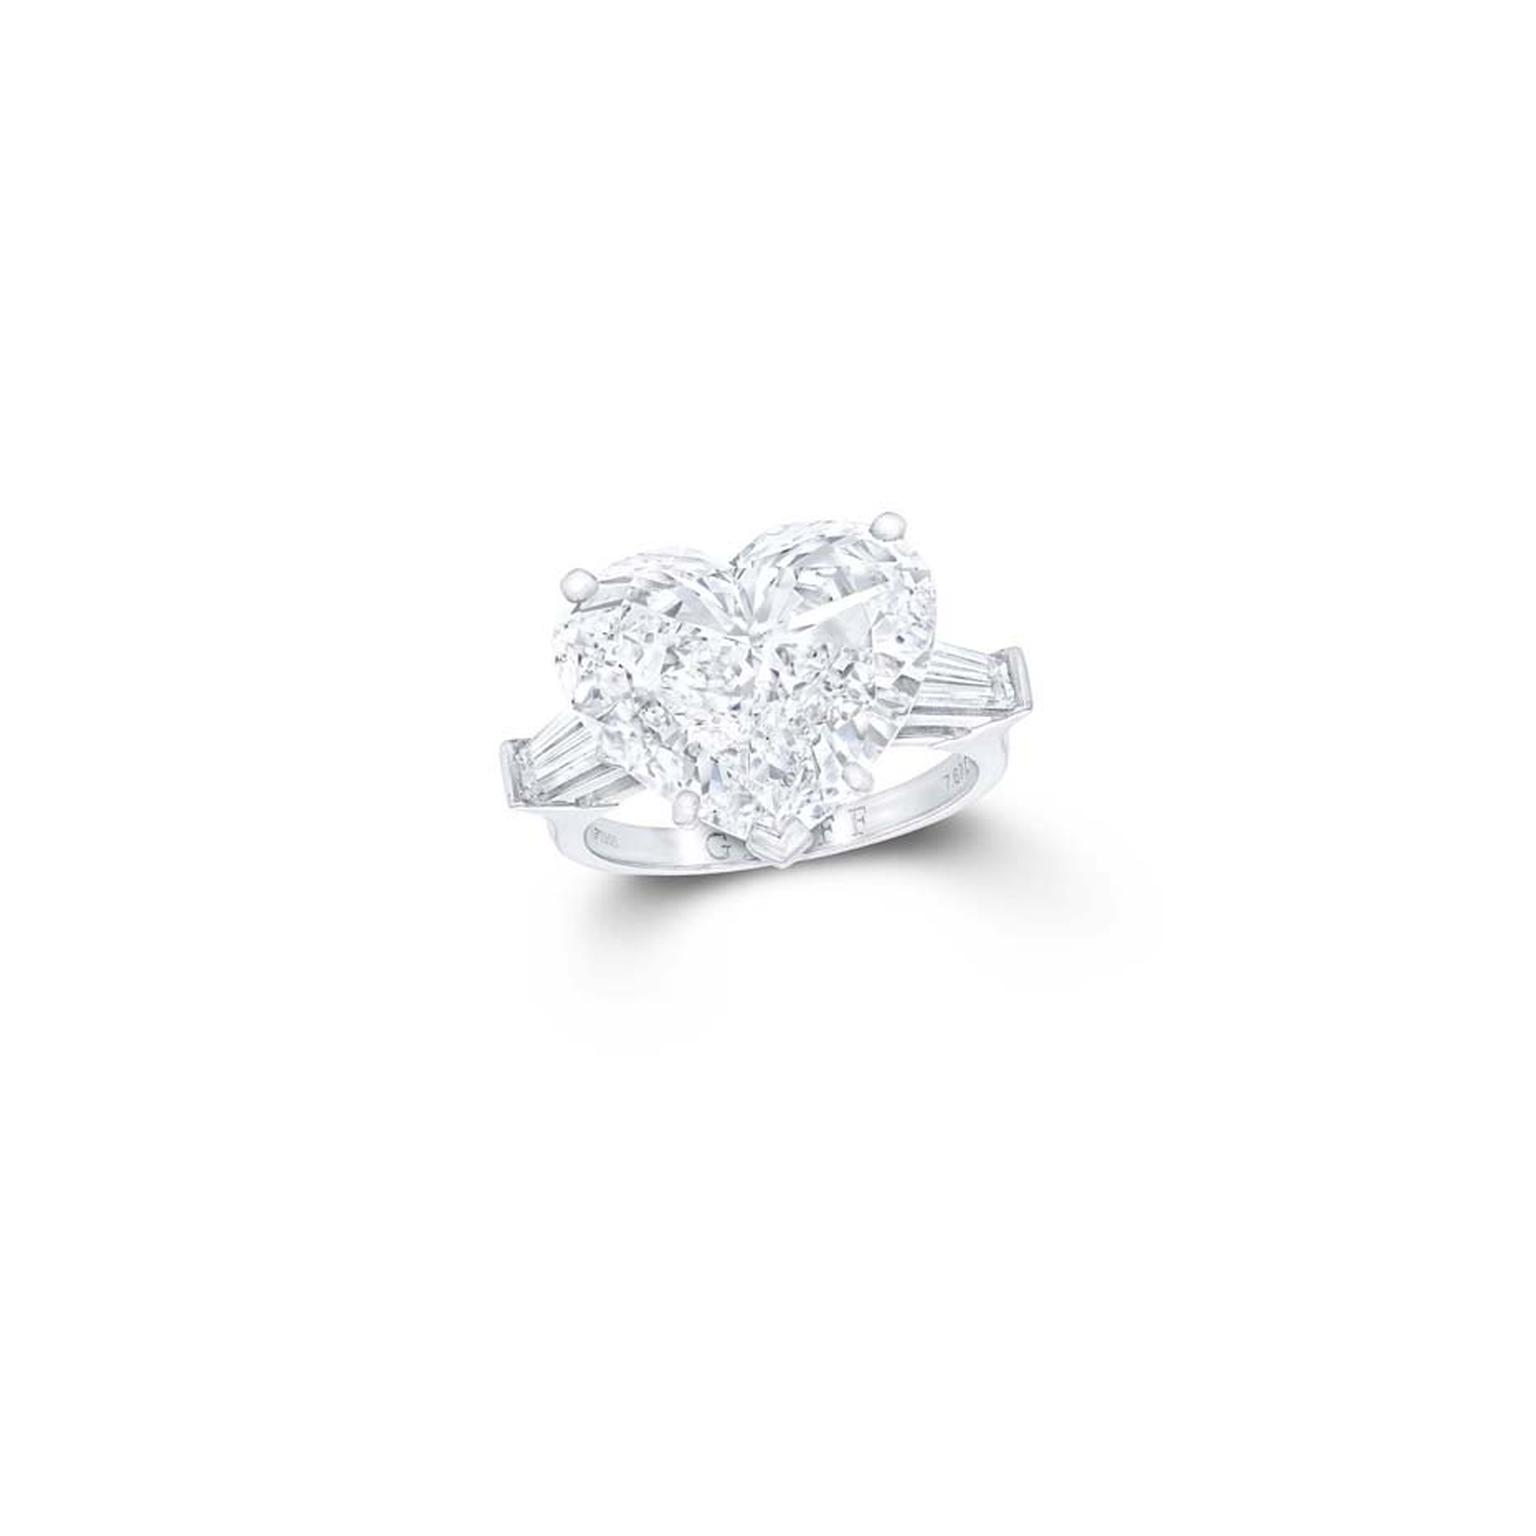 Graff heart-shape diamond engagement ring with tapered baguette diamond shoulders.